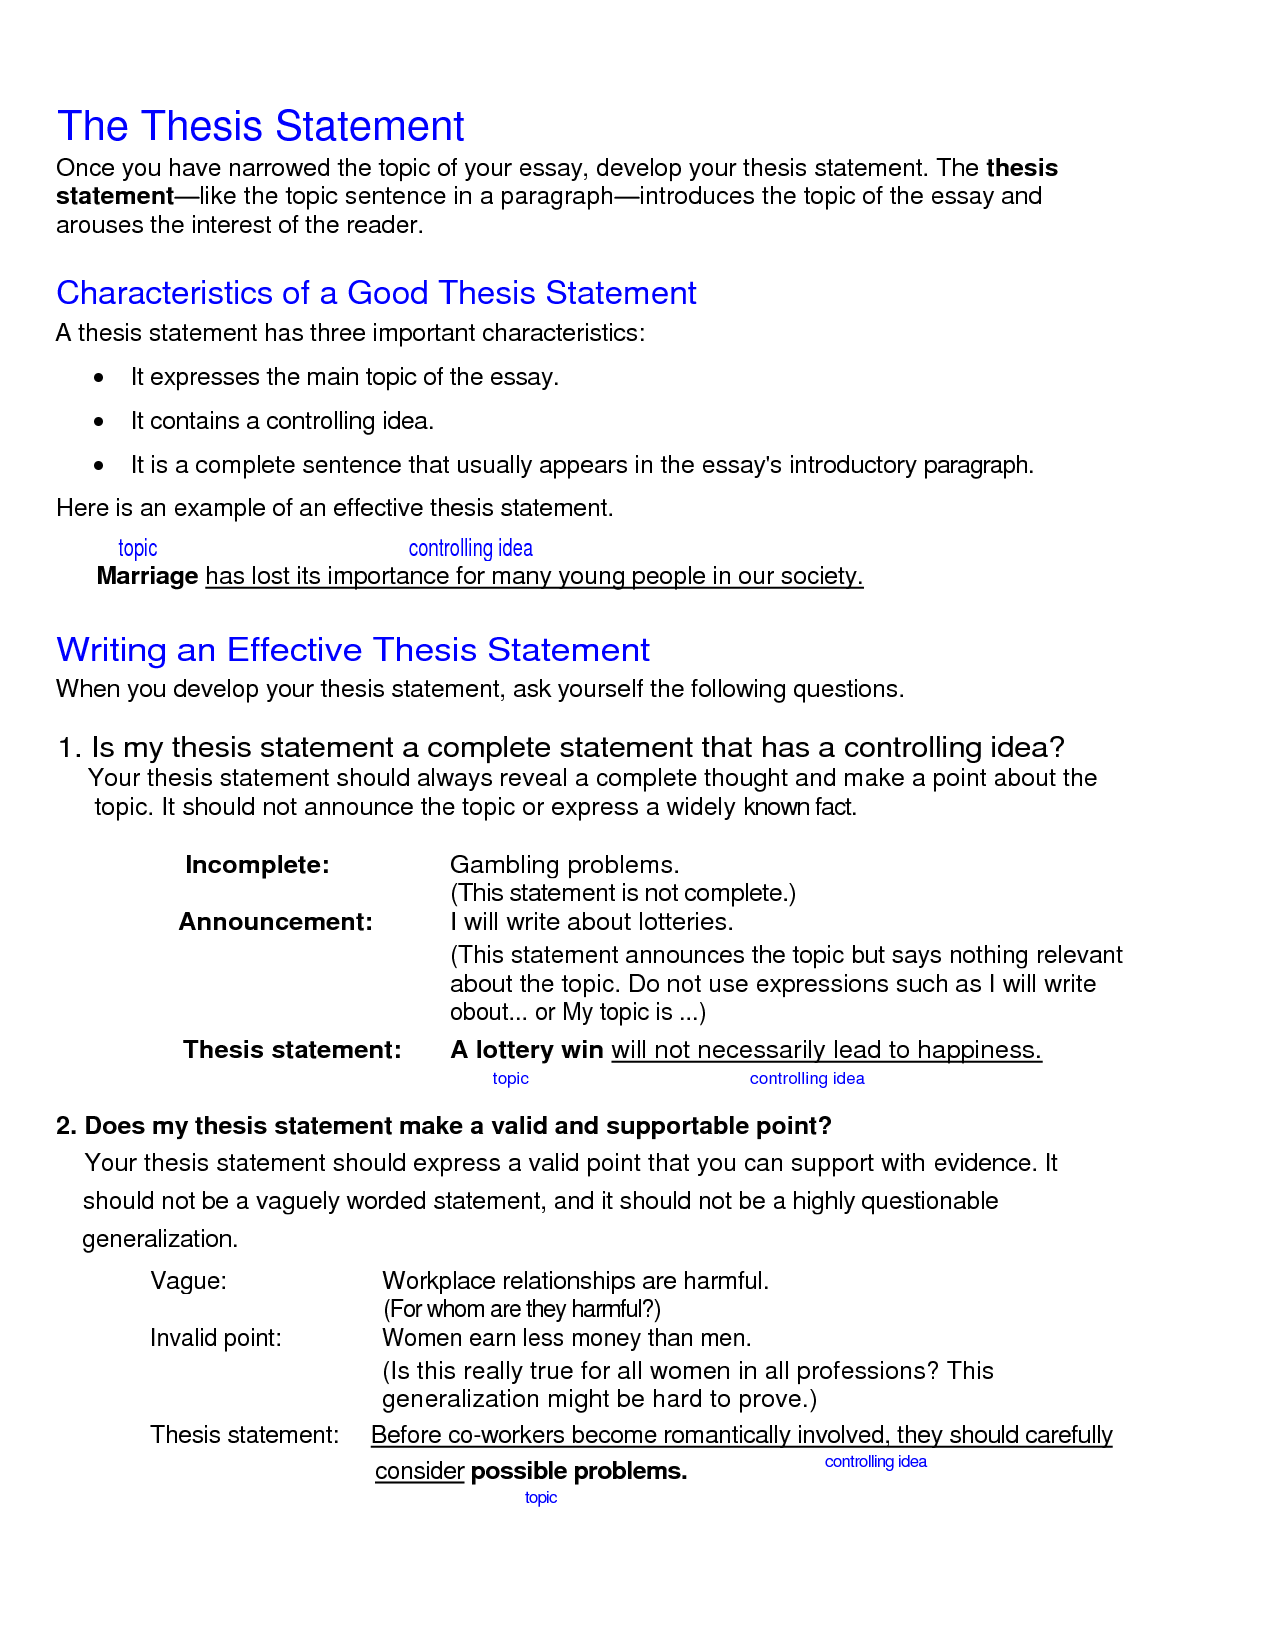 Dissertation Problem Statement Outline  How To Write A Problem  Dissertation Problem Statement Outline Dissertation Problem Statement  Outline